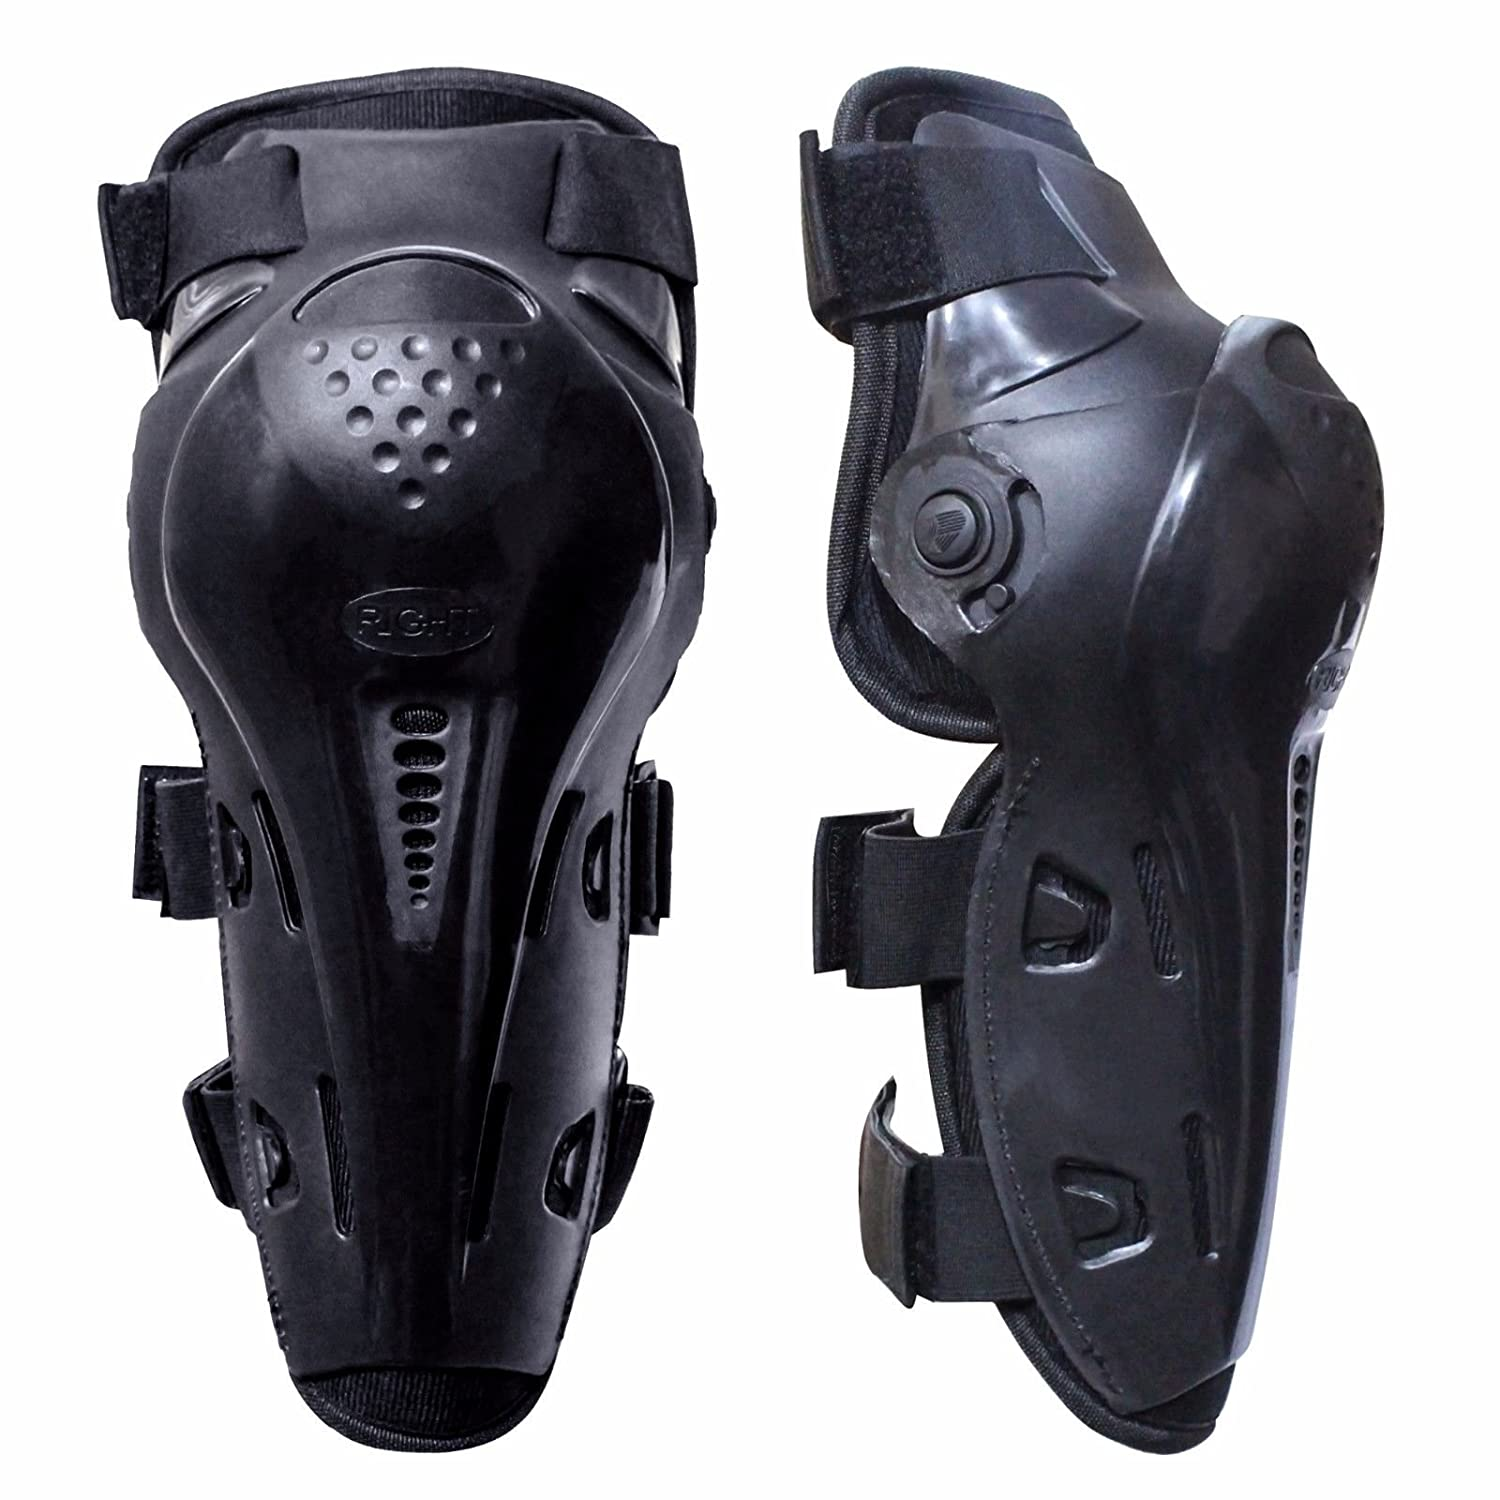 Motorbike Motorcycle Knee Protectors Armour Guard Pad CE Approved Motocross Accessories For Men PROFIRST Mens Knee Protection